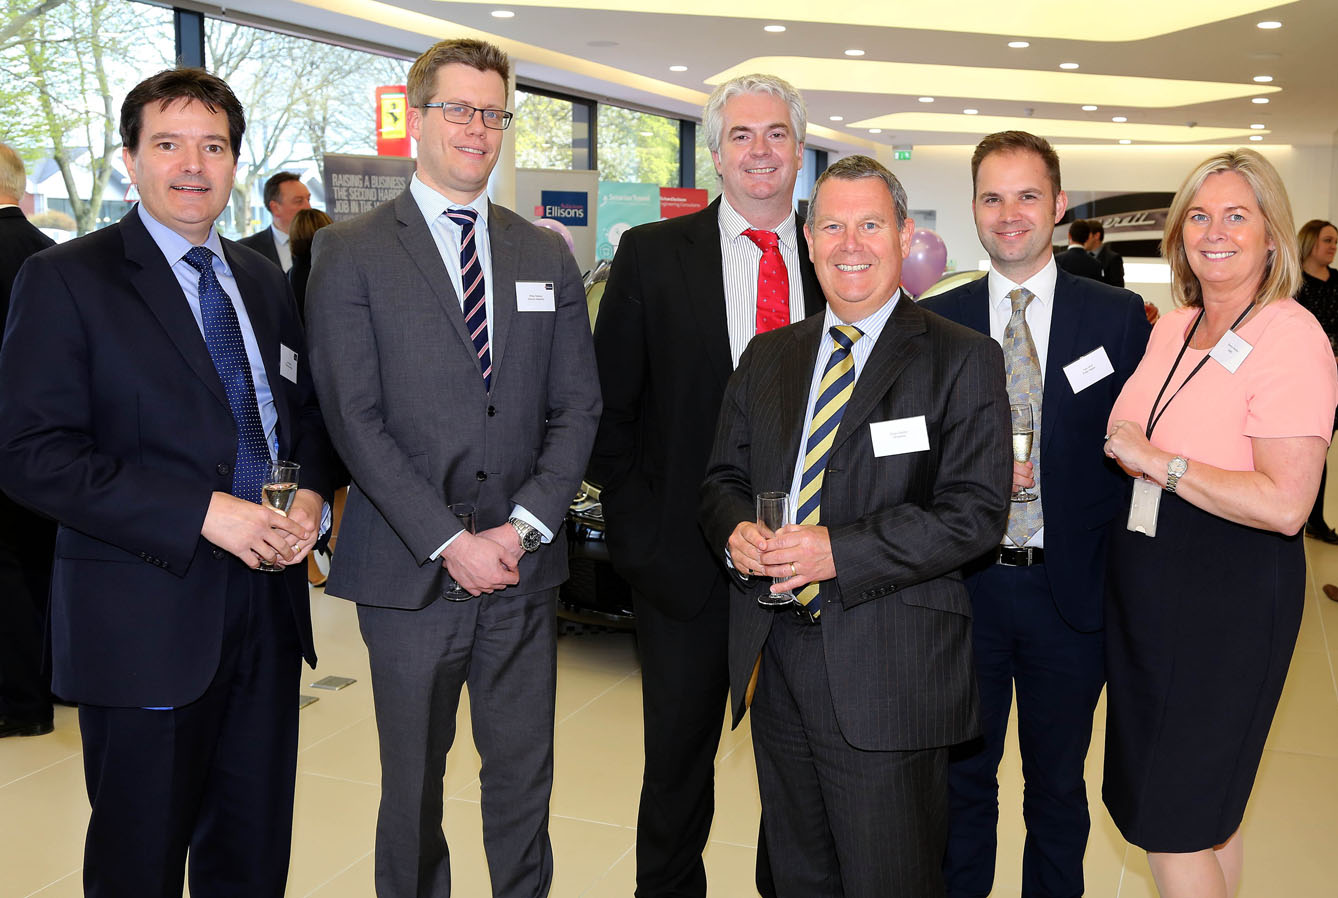 Colchester Community Group host Business Network